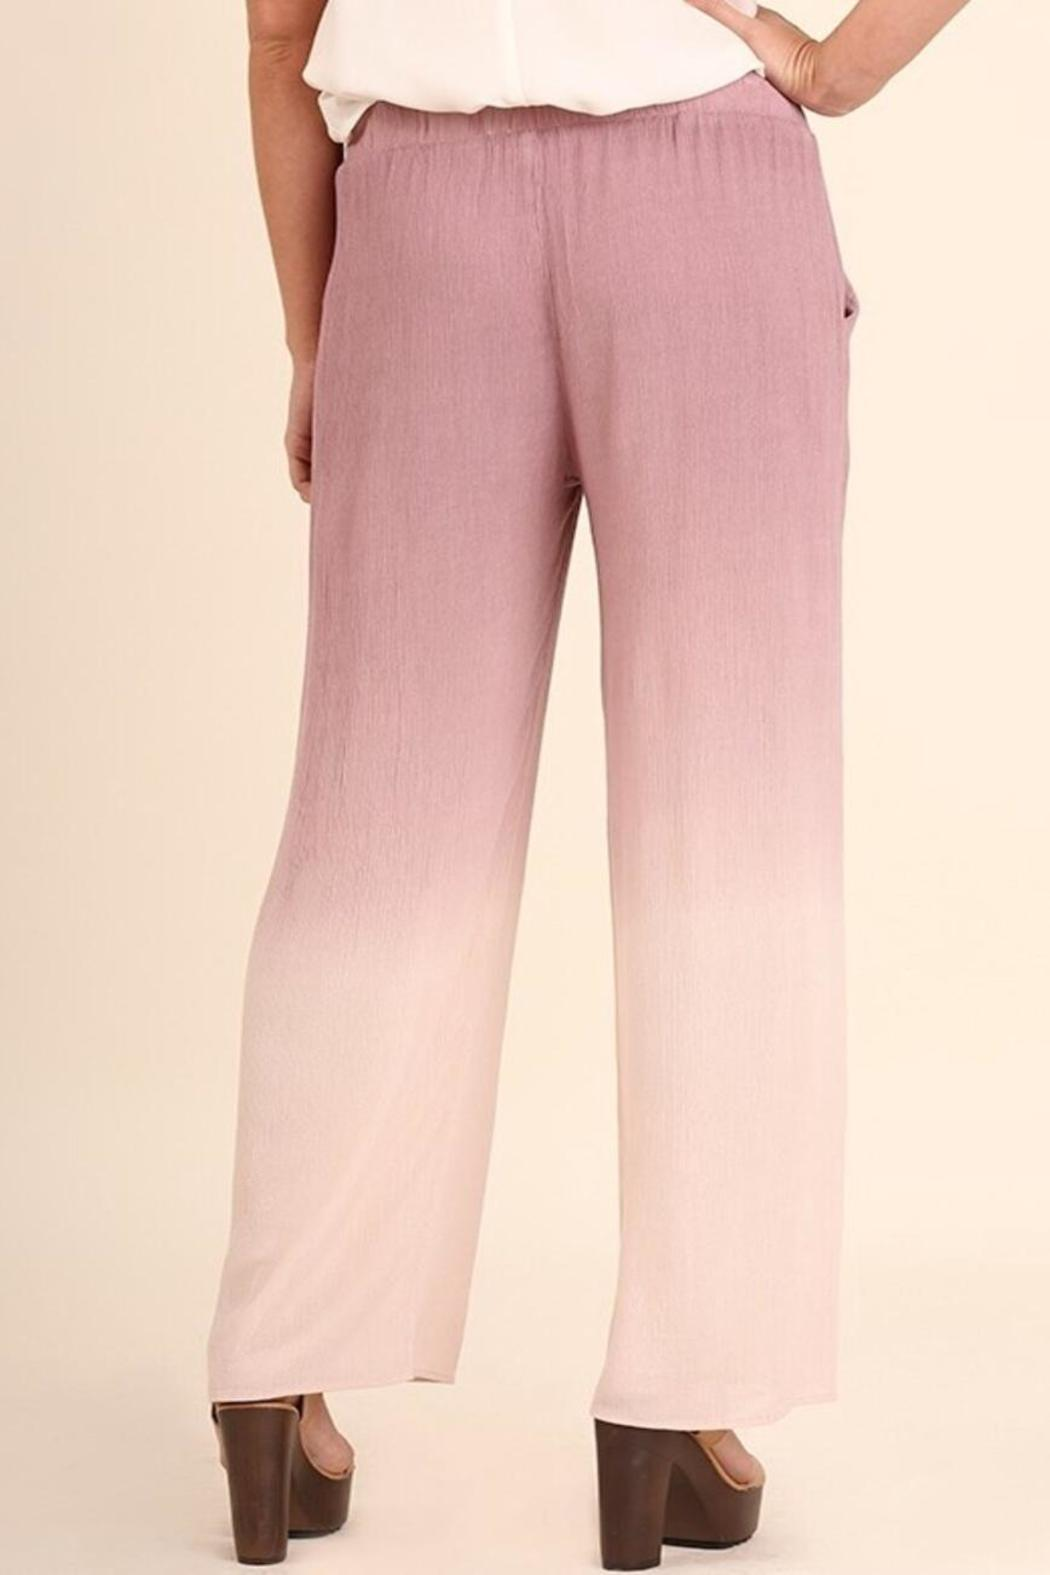 Umgee USA Ombré Pants - Front Full Image